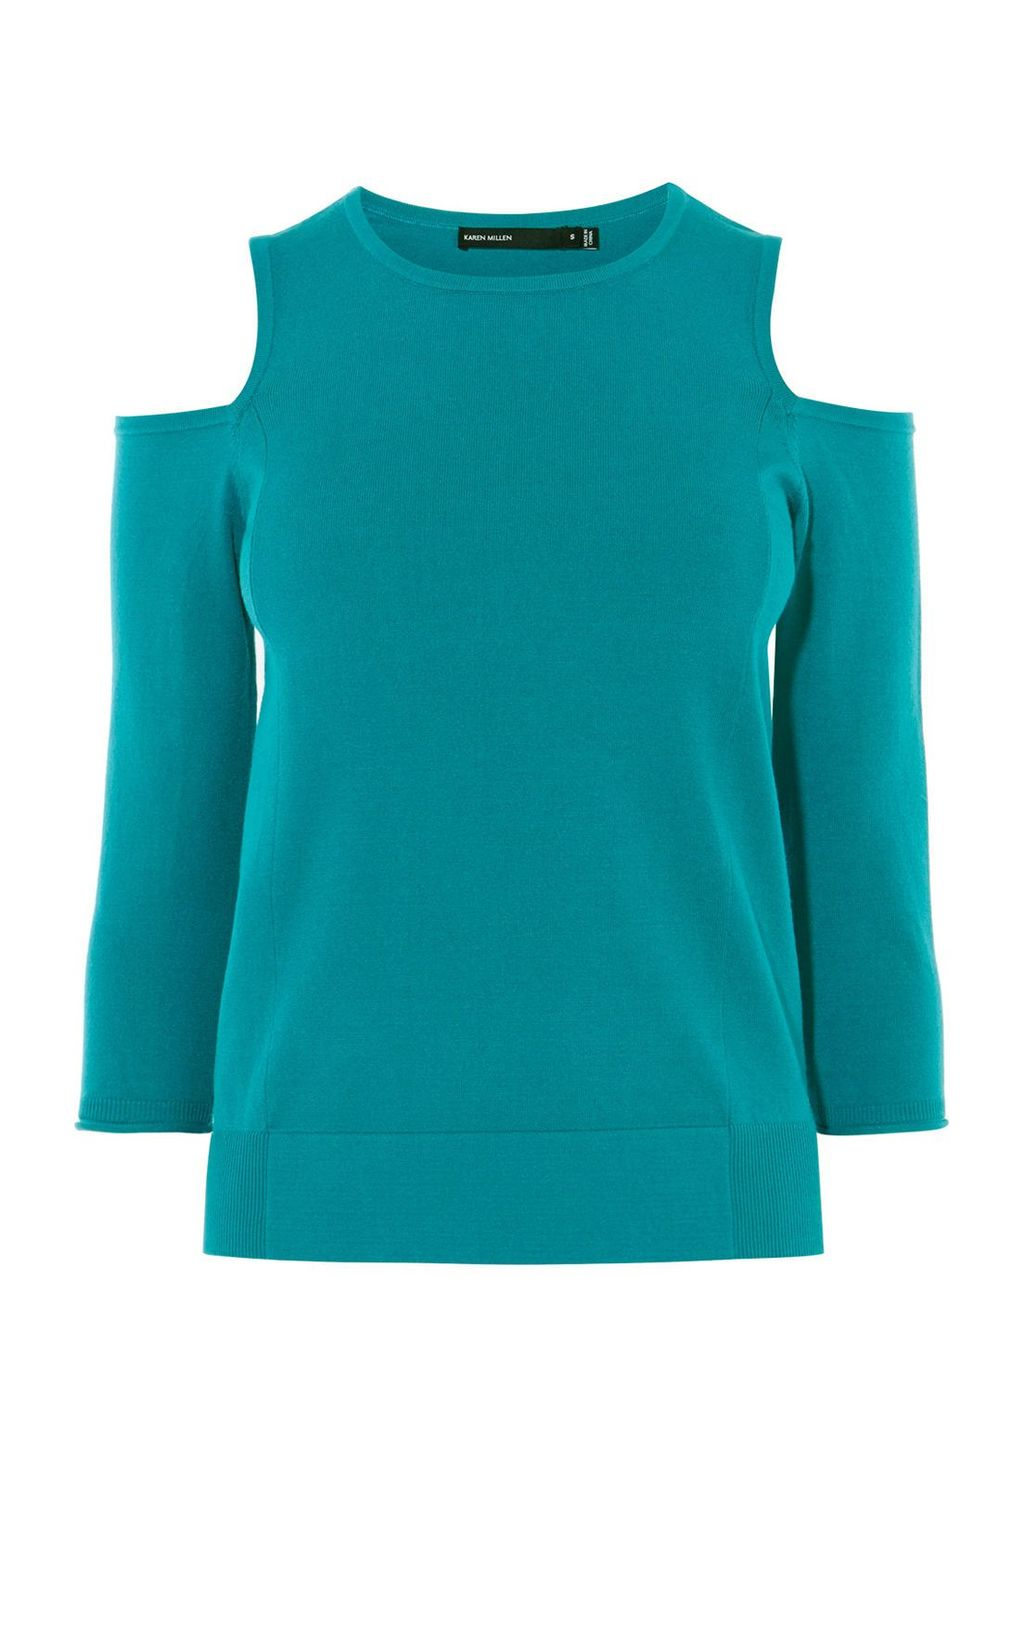 Cutout Shoulder Jumper, Teal - pattern: plain; style: standard; hip detail: fitted at hip; predominant colour: teal; occasions: casual; length: standard; fit: slim fit; neckline: crew; shoulder detail: cut out shoulder; sleeve length: 3/4 length; sleeve style: standard; pattern type: fabric; texture group: jersey - stretchy/drapey; fibres: viscose/rayon - mix; season: s/s 2016